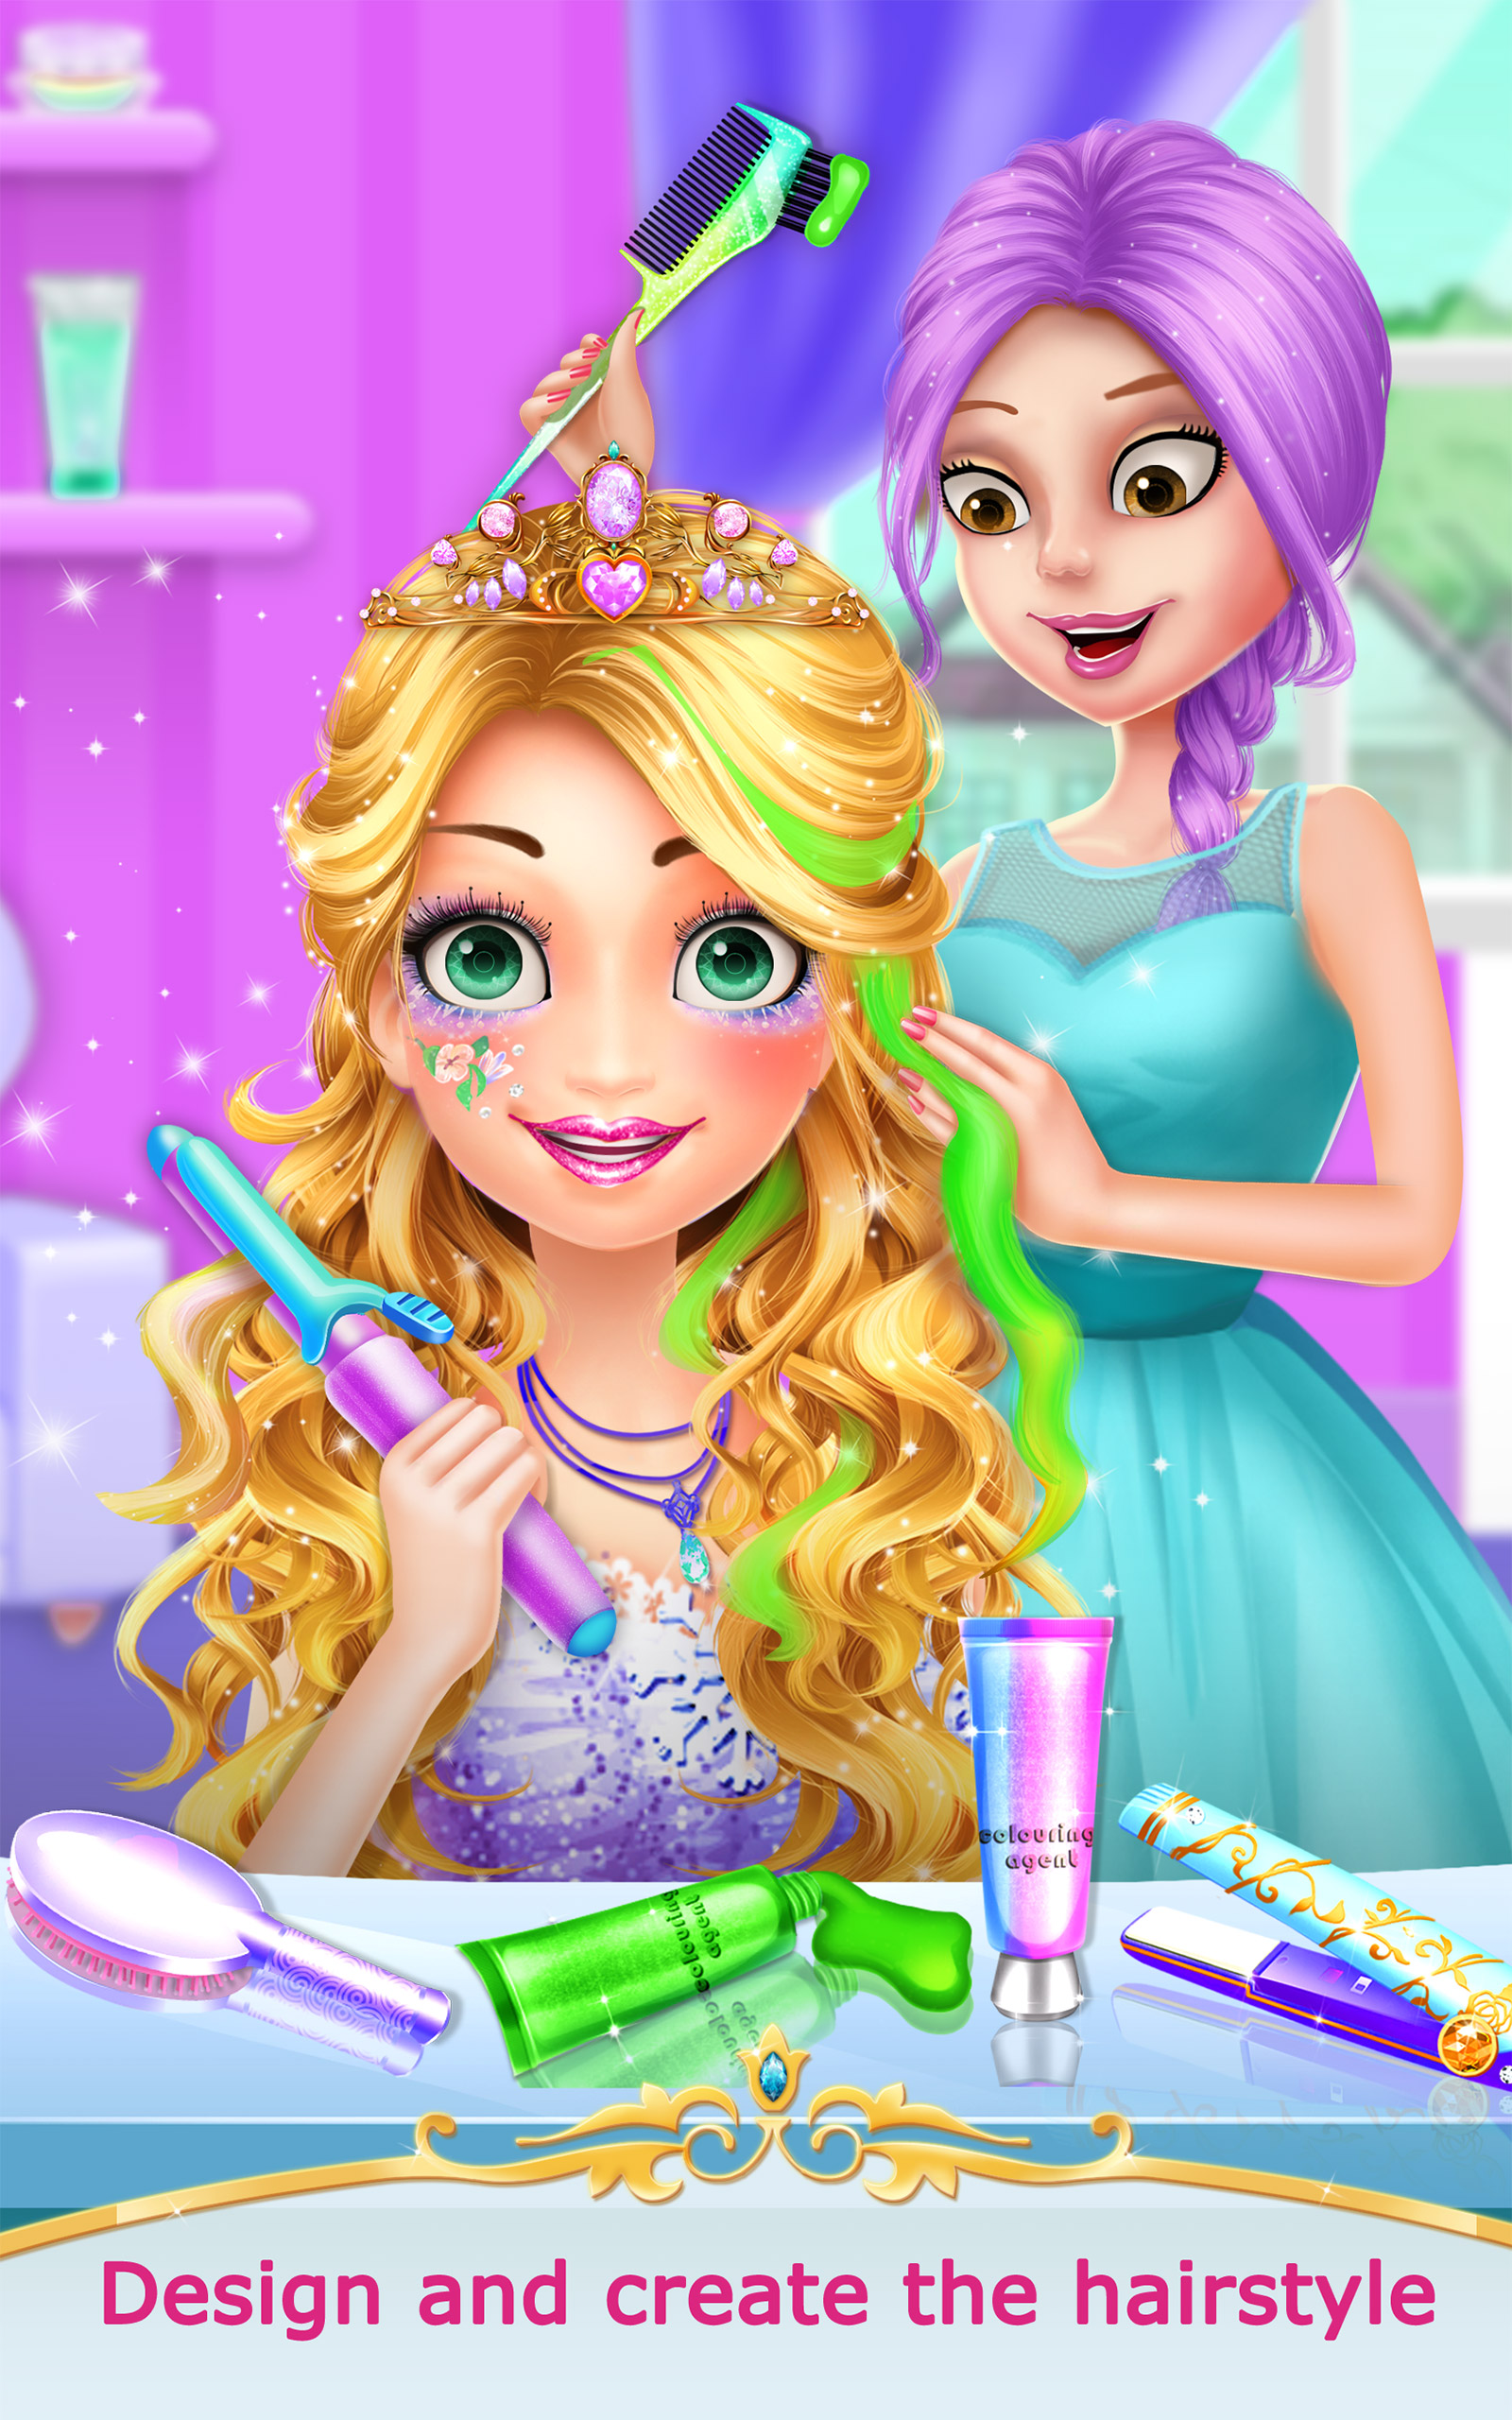 Amazon Princess Salon 2 Girl Games Appstore for Android